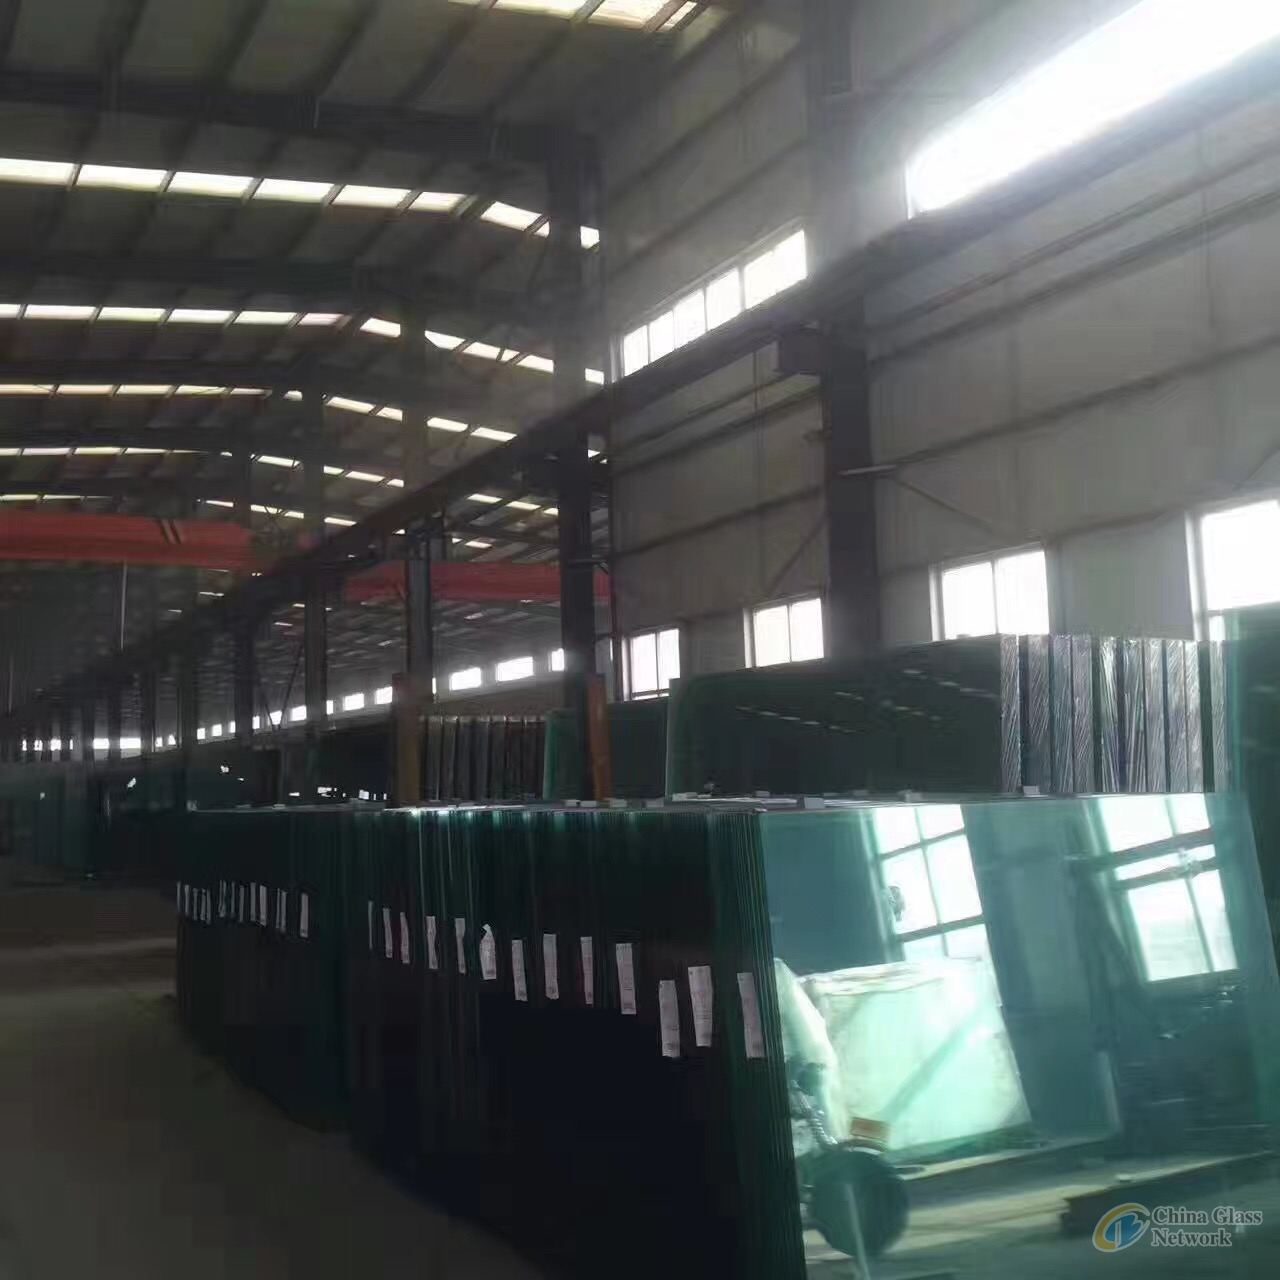 High Quality Anquan ClearFloat Glass With 6 MM Thickness